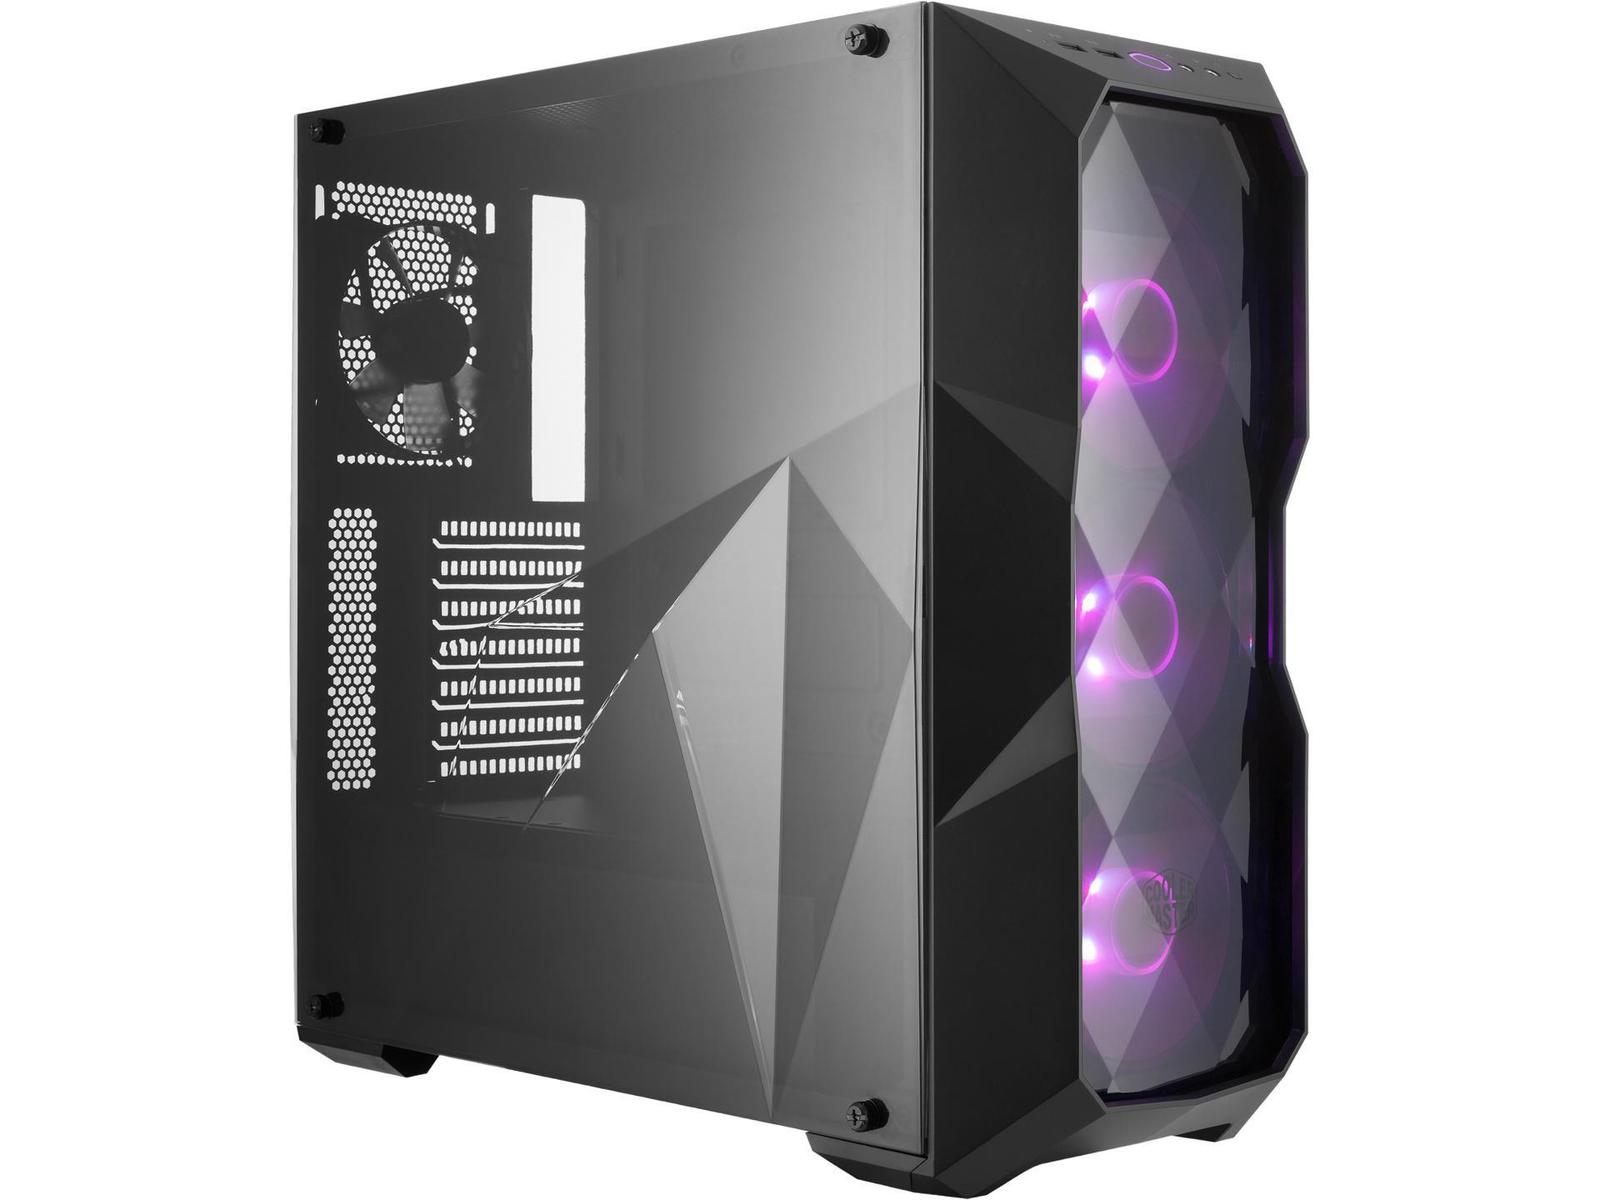 Cooler Master MasterBox TD500 ATX Mid Tower Case